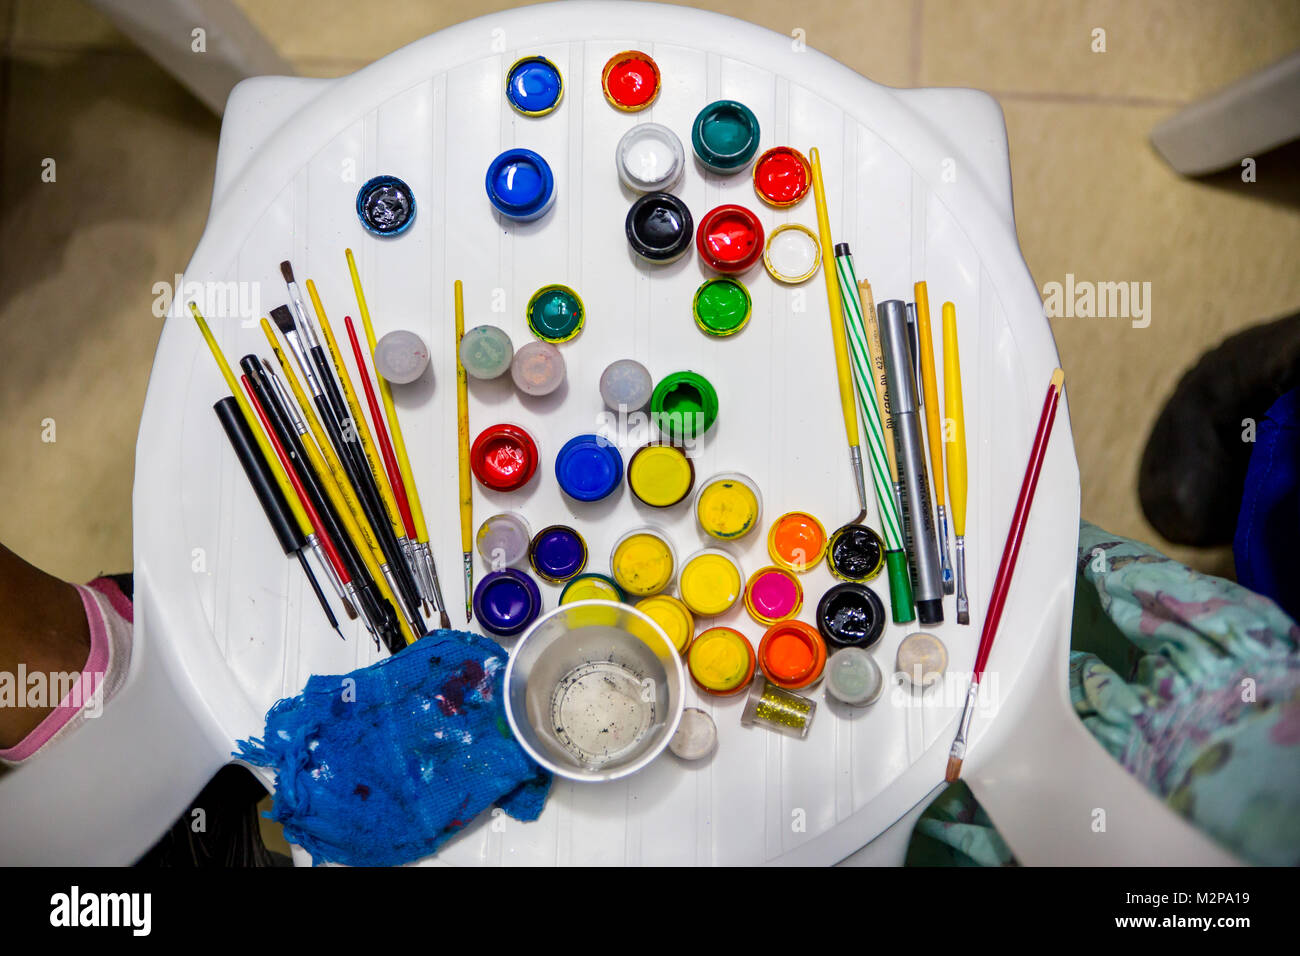 Remarkable Chair With Many Colourful Paint Utensils For Kids Play Seen Pdpeps Interior Chair Design Pdpepsorg